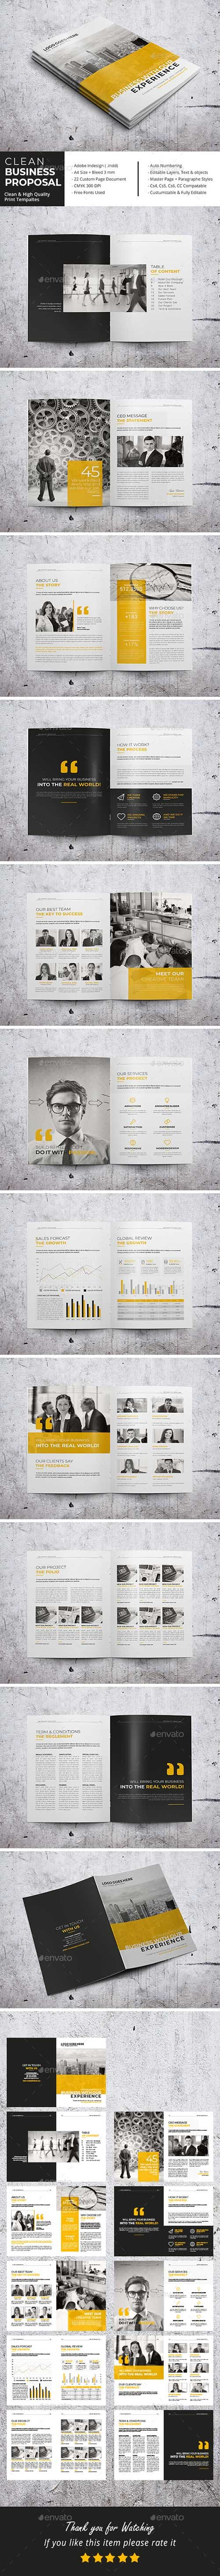 Graphicriver - Clean Business Proposal 21280656